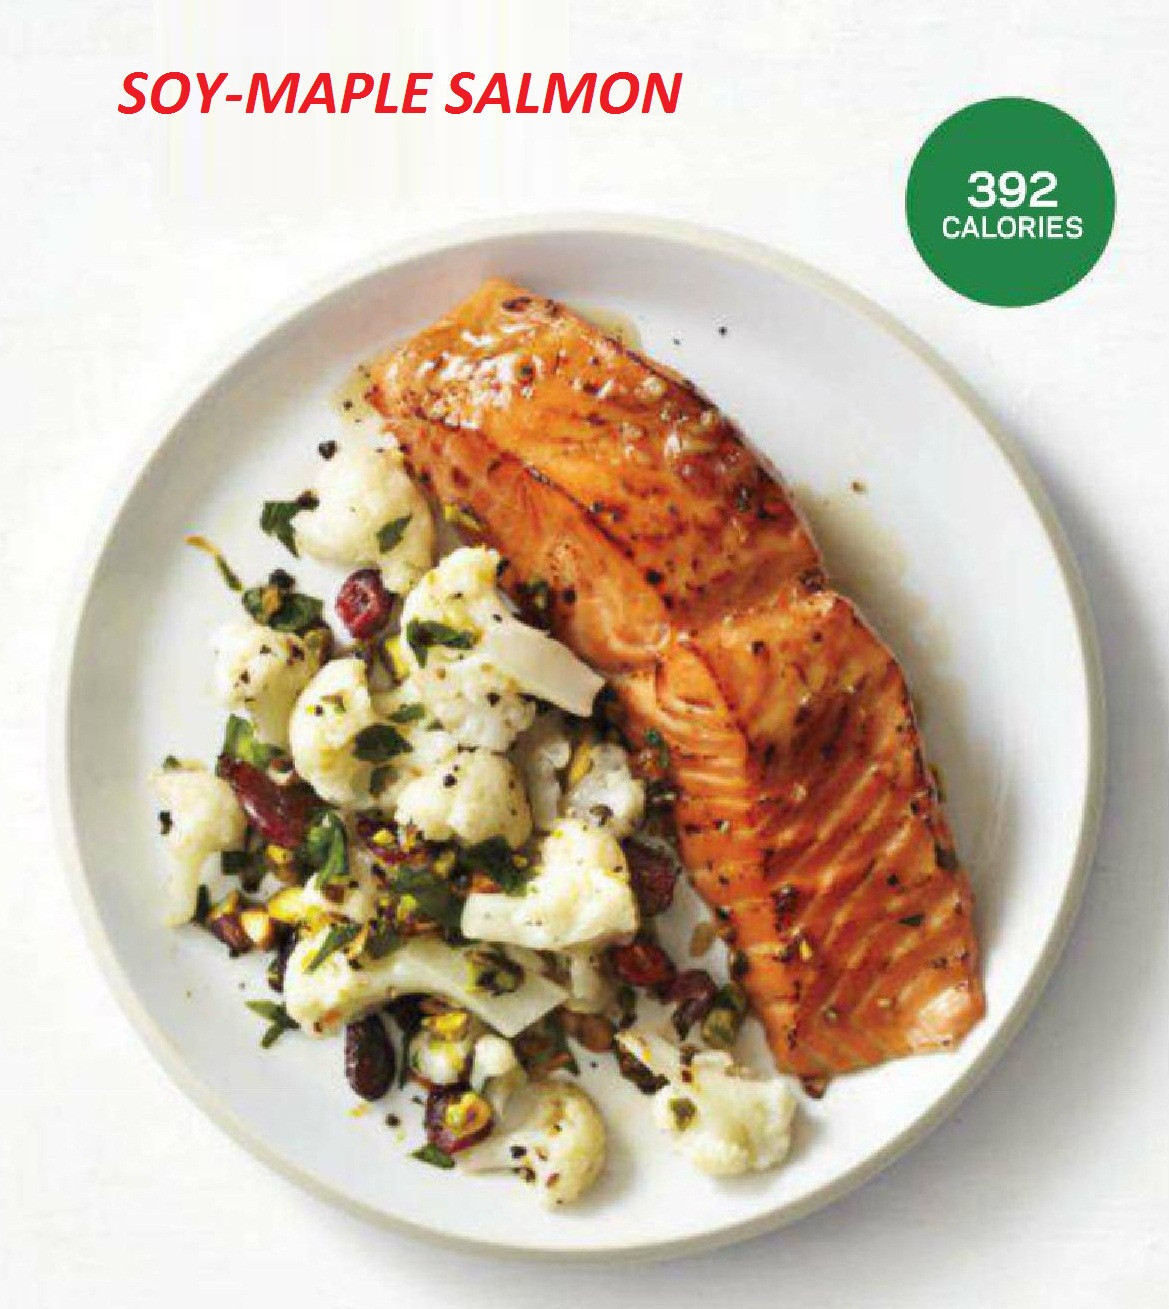 Healthy Salmon Recipes For Weight Loss  SOY MAPLE SALMON Healthy Fish Recipe 392 Calories How